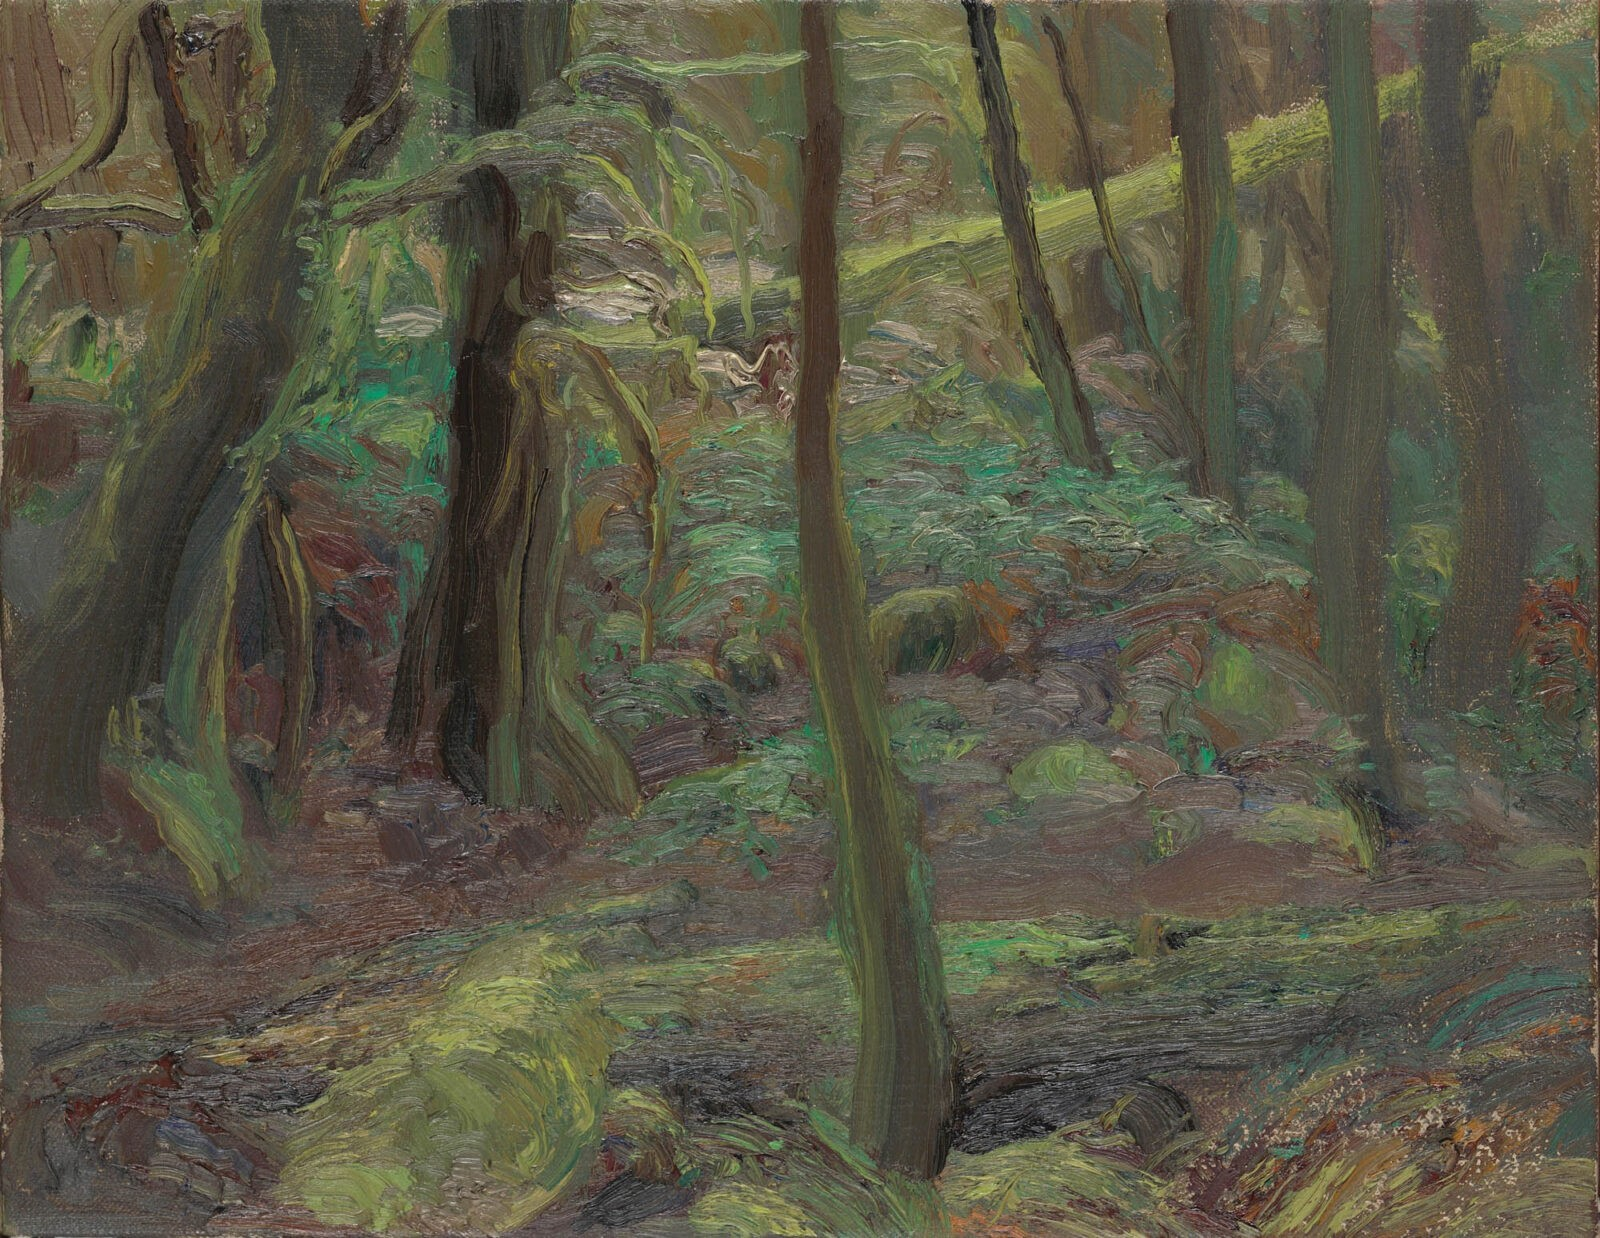 Liza Visagie - Forest Interior. Oil on Linen 10 x 12 inches